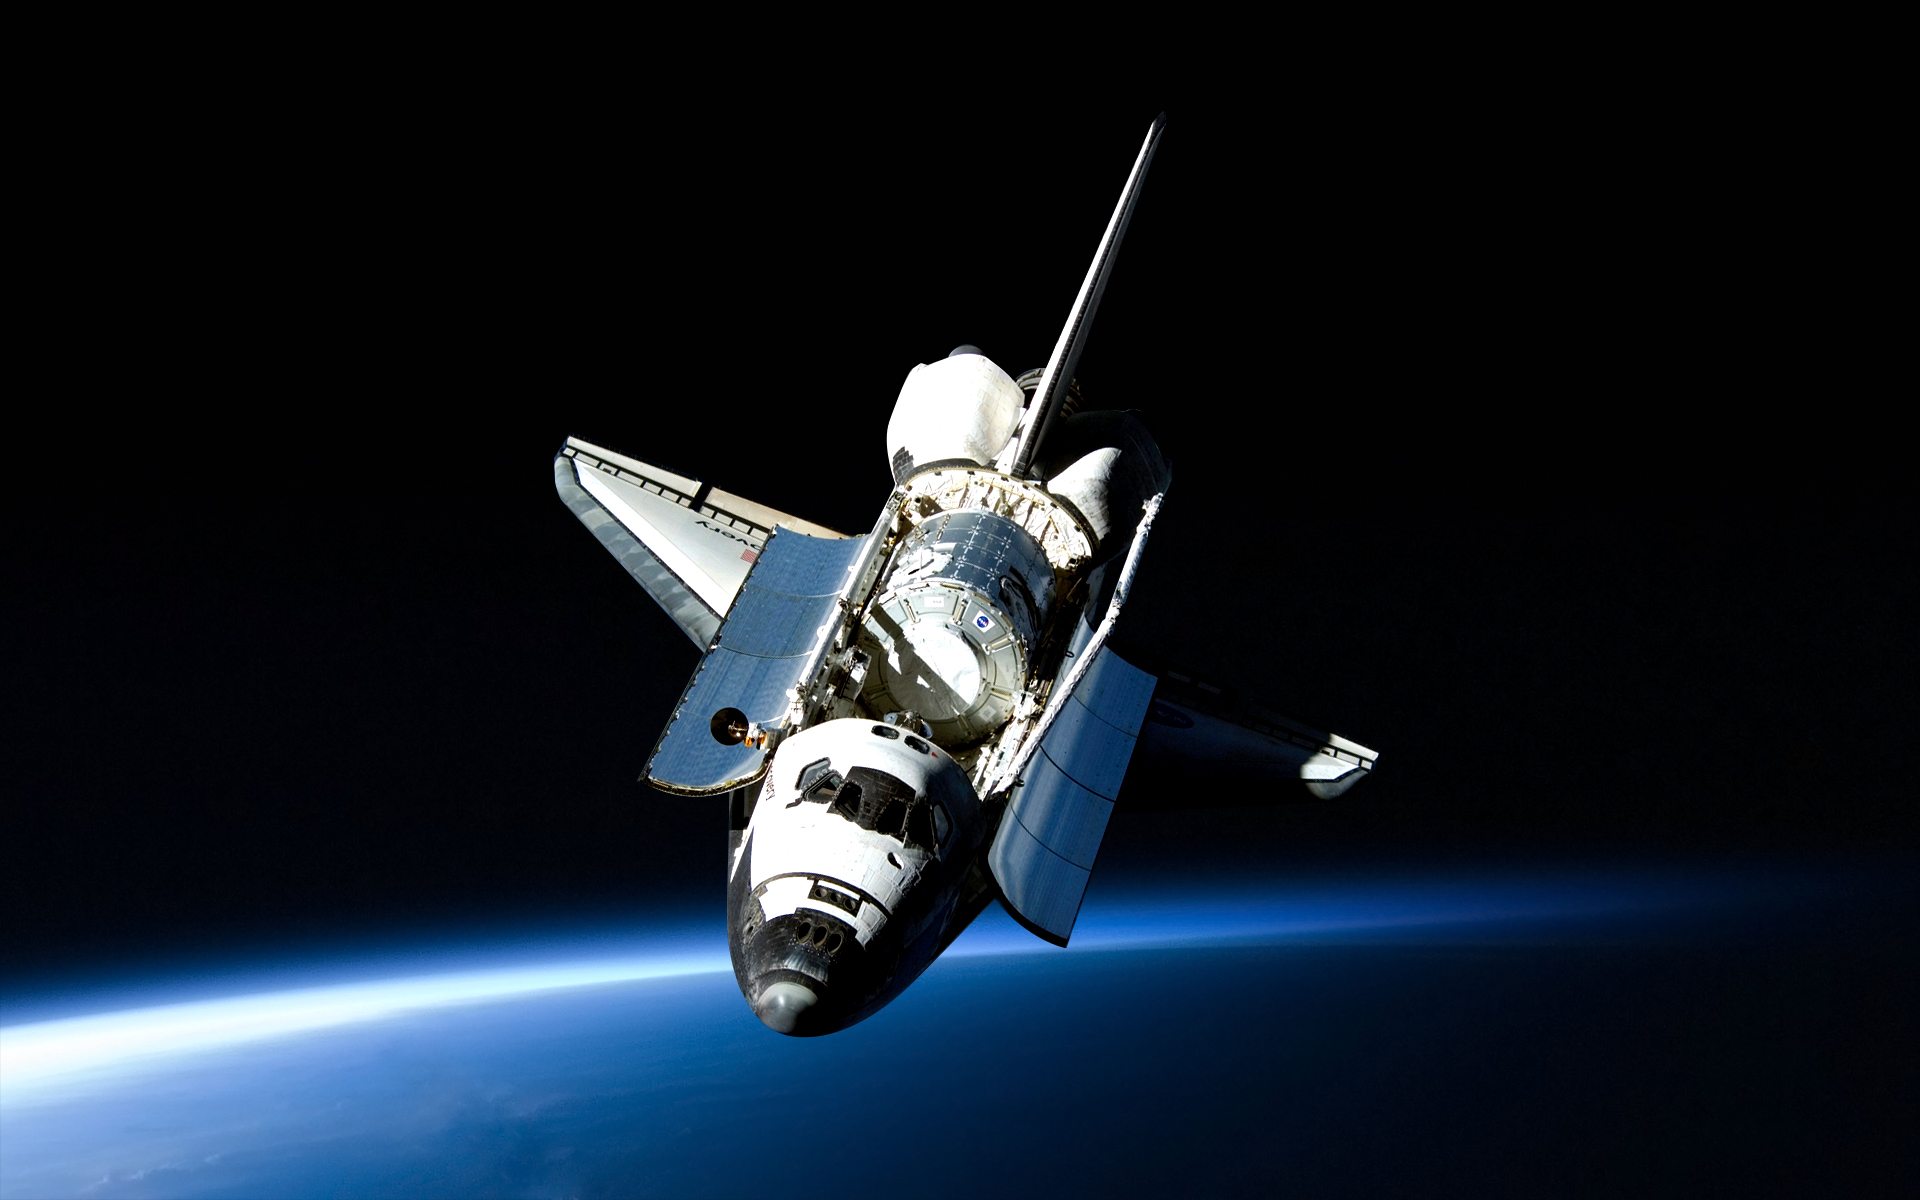 space shuttle space background - photo #19